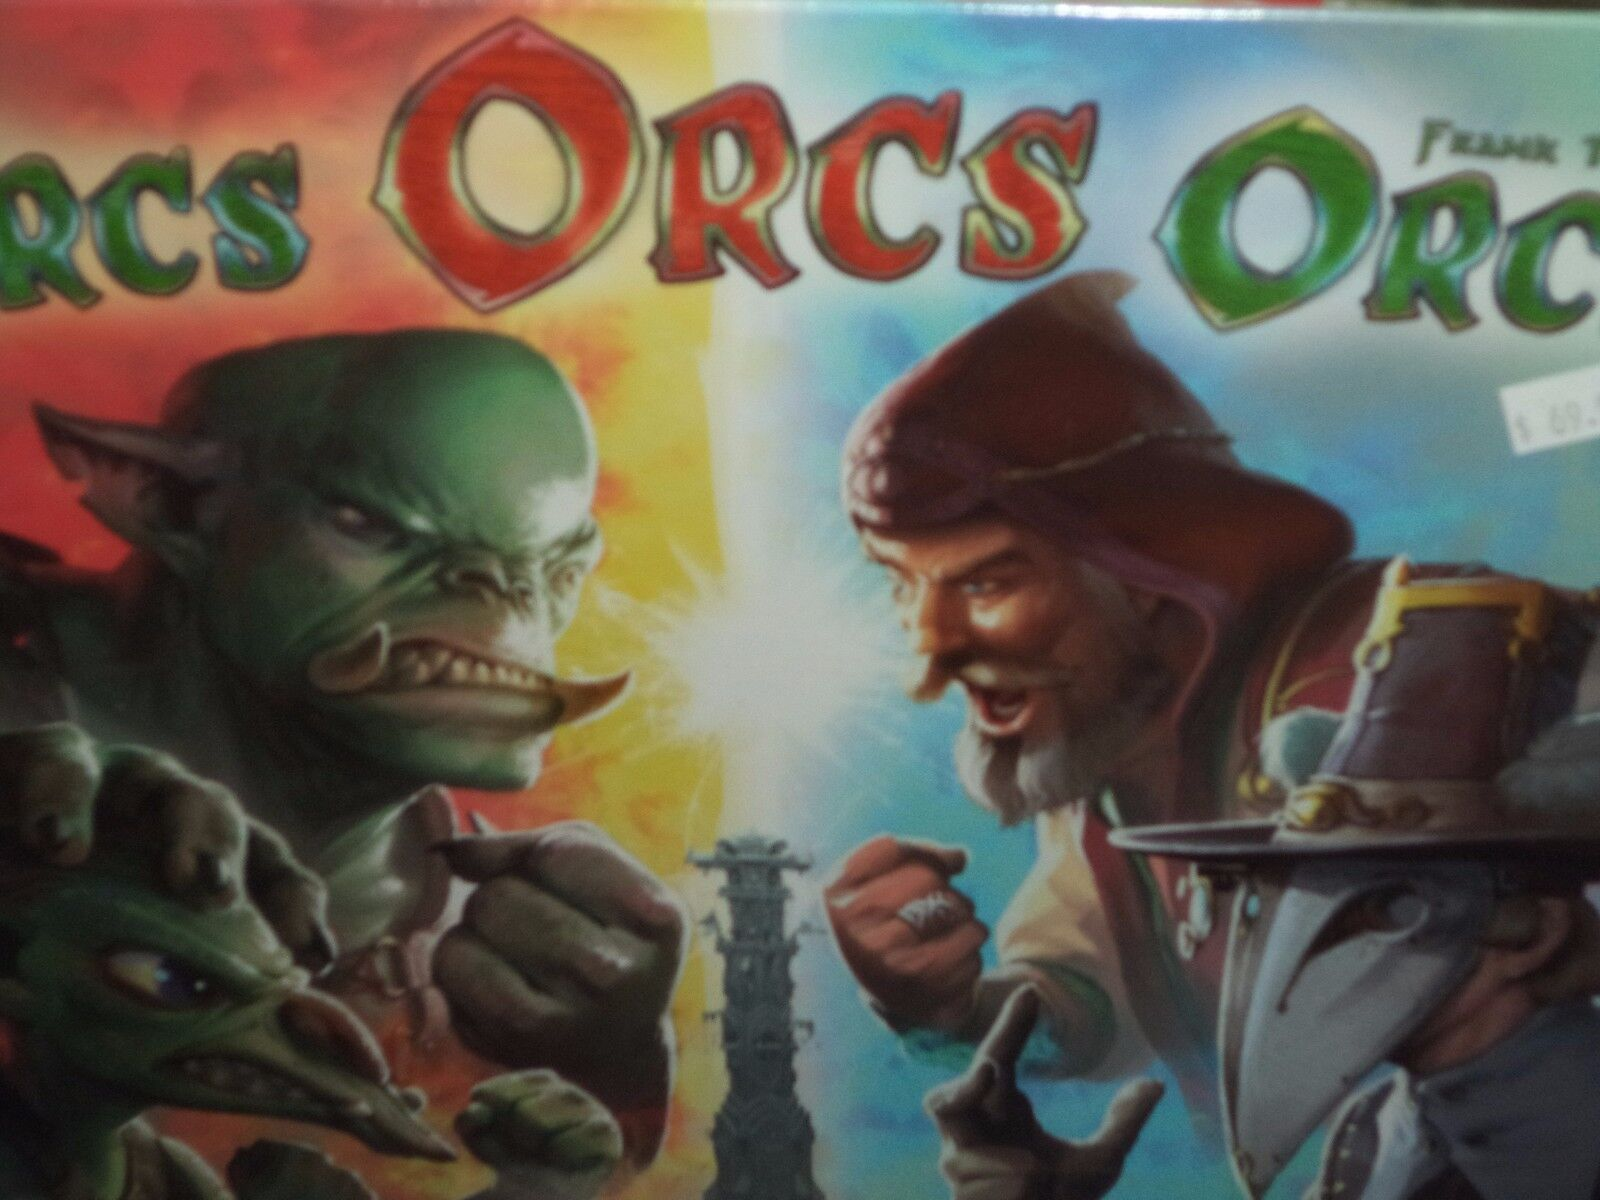 Orcs Orcs Orcs  - Queen Games Games Games Board Game New 526878